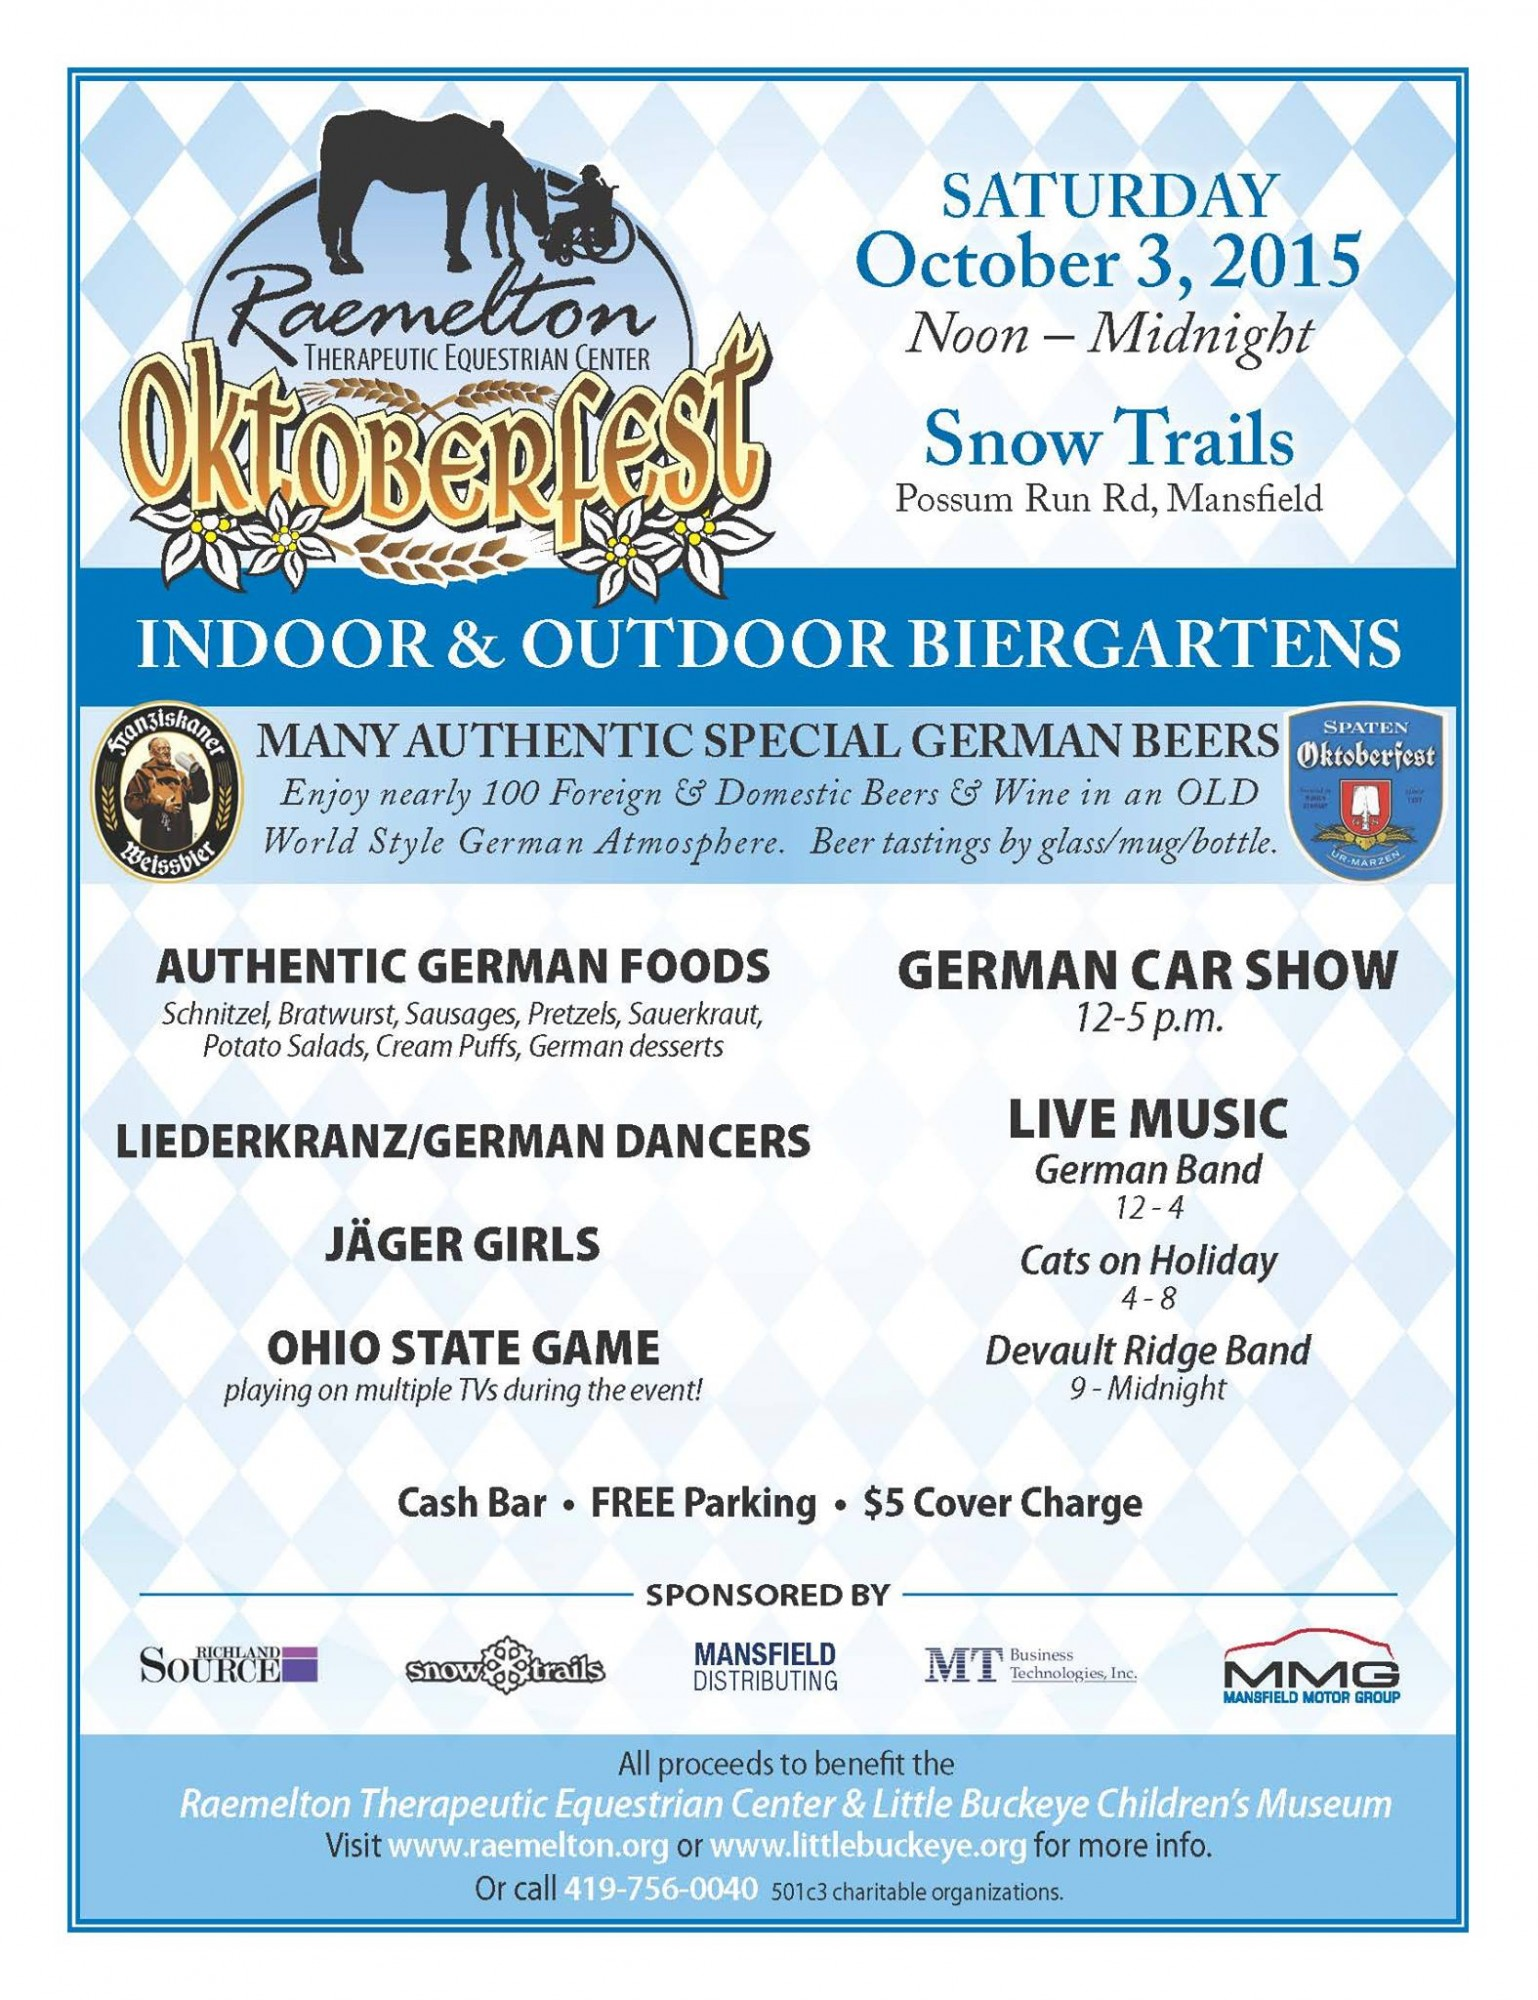 Raemelton Therapeutic Equestrian Center Oktoberfest at Snow Trails